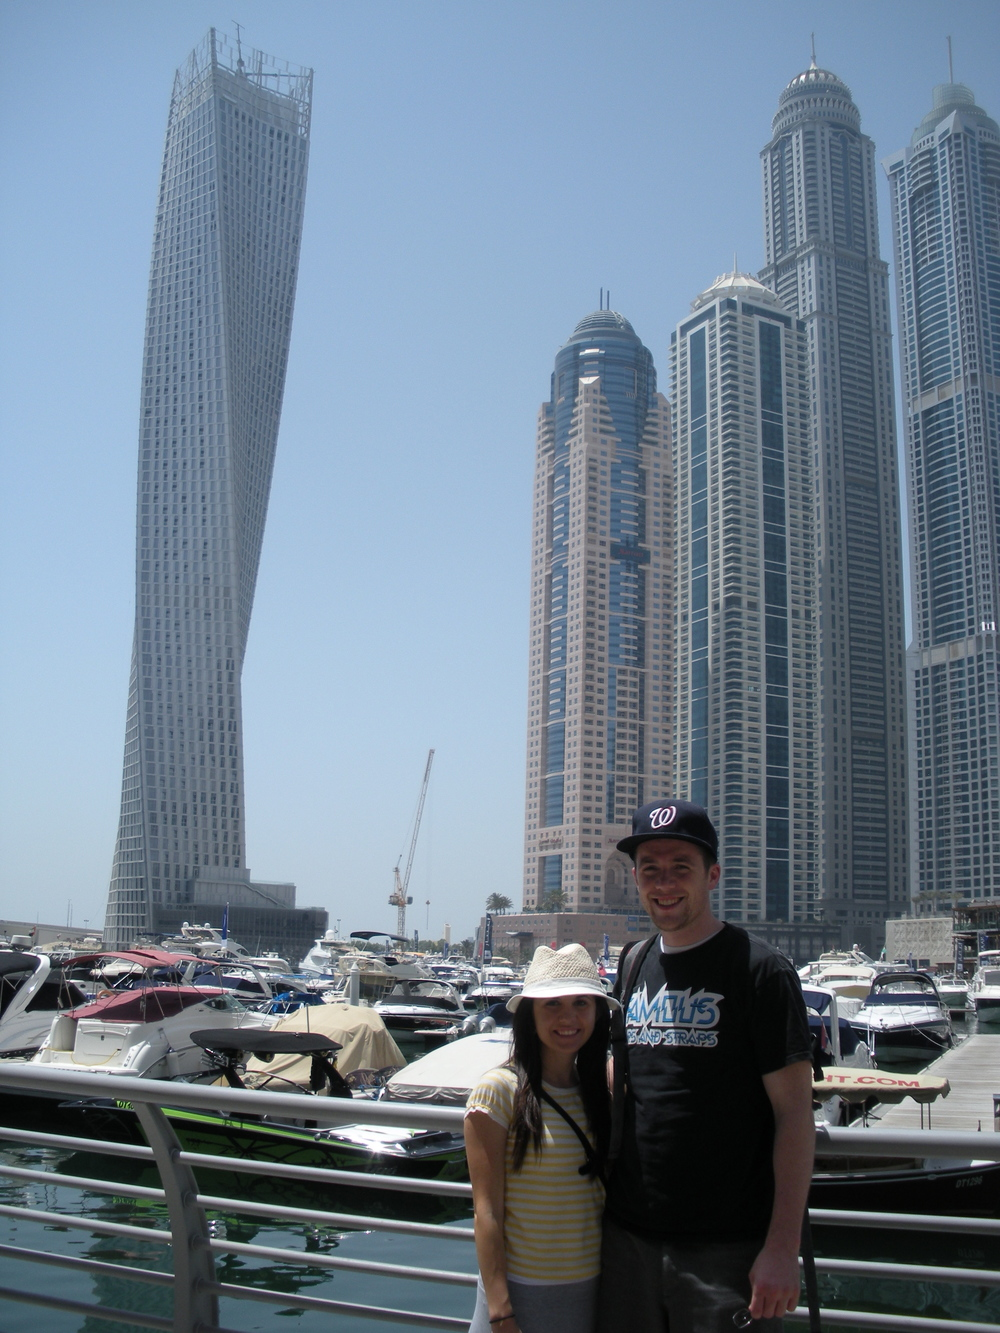 The Infinity Tower is on the left and the Princess Tower is the tallest one on the right.